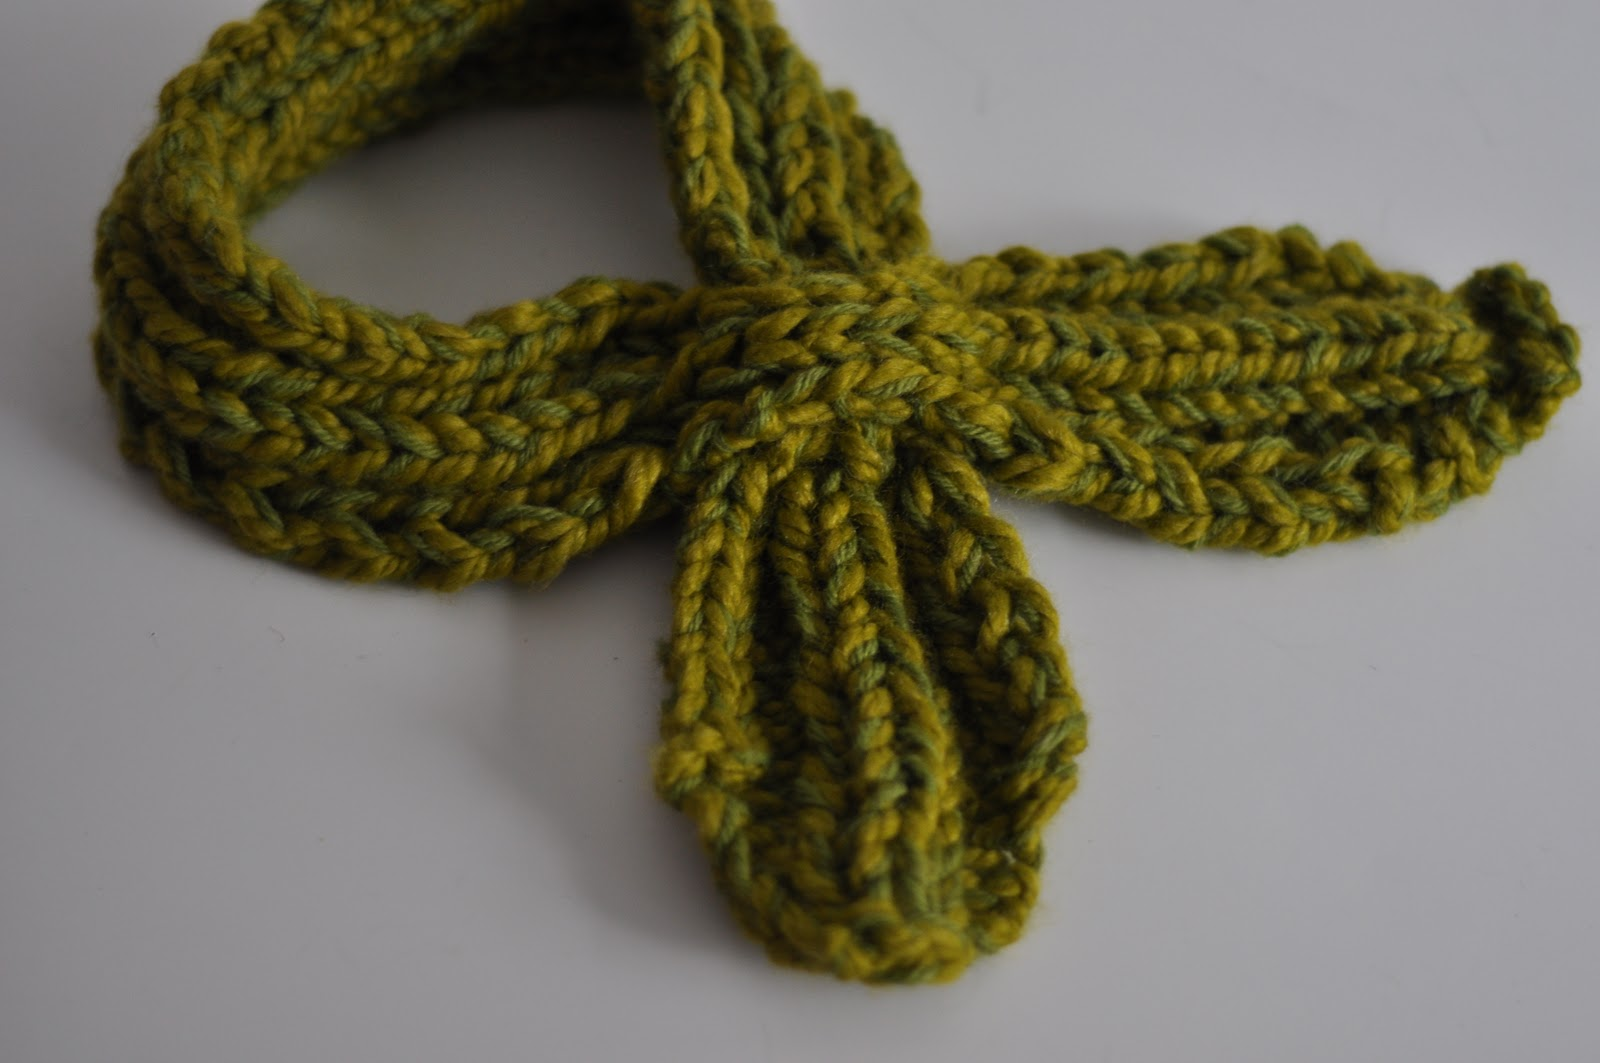 Knitting Pattern For Scarflette : Aesthetic Nest: Knitting: Looped Scarflette for Me ...